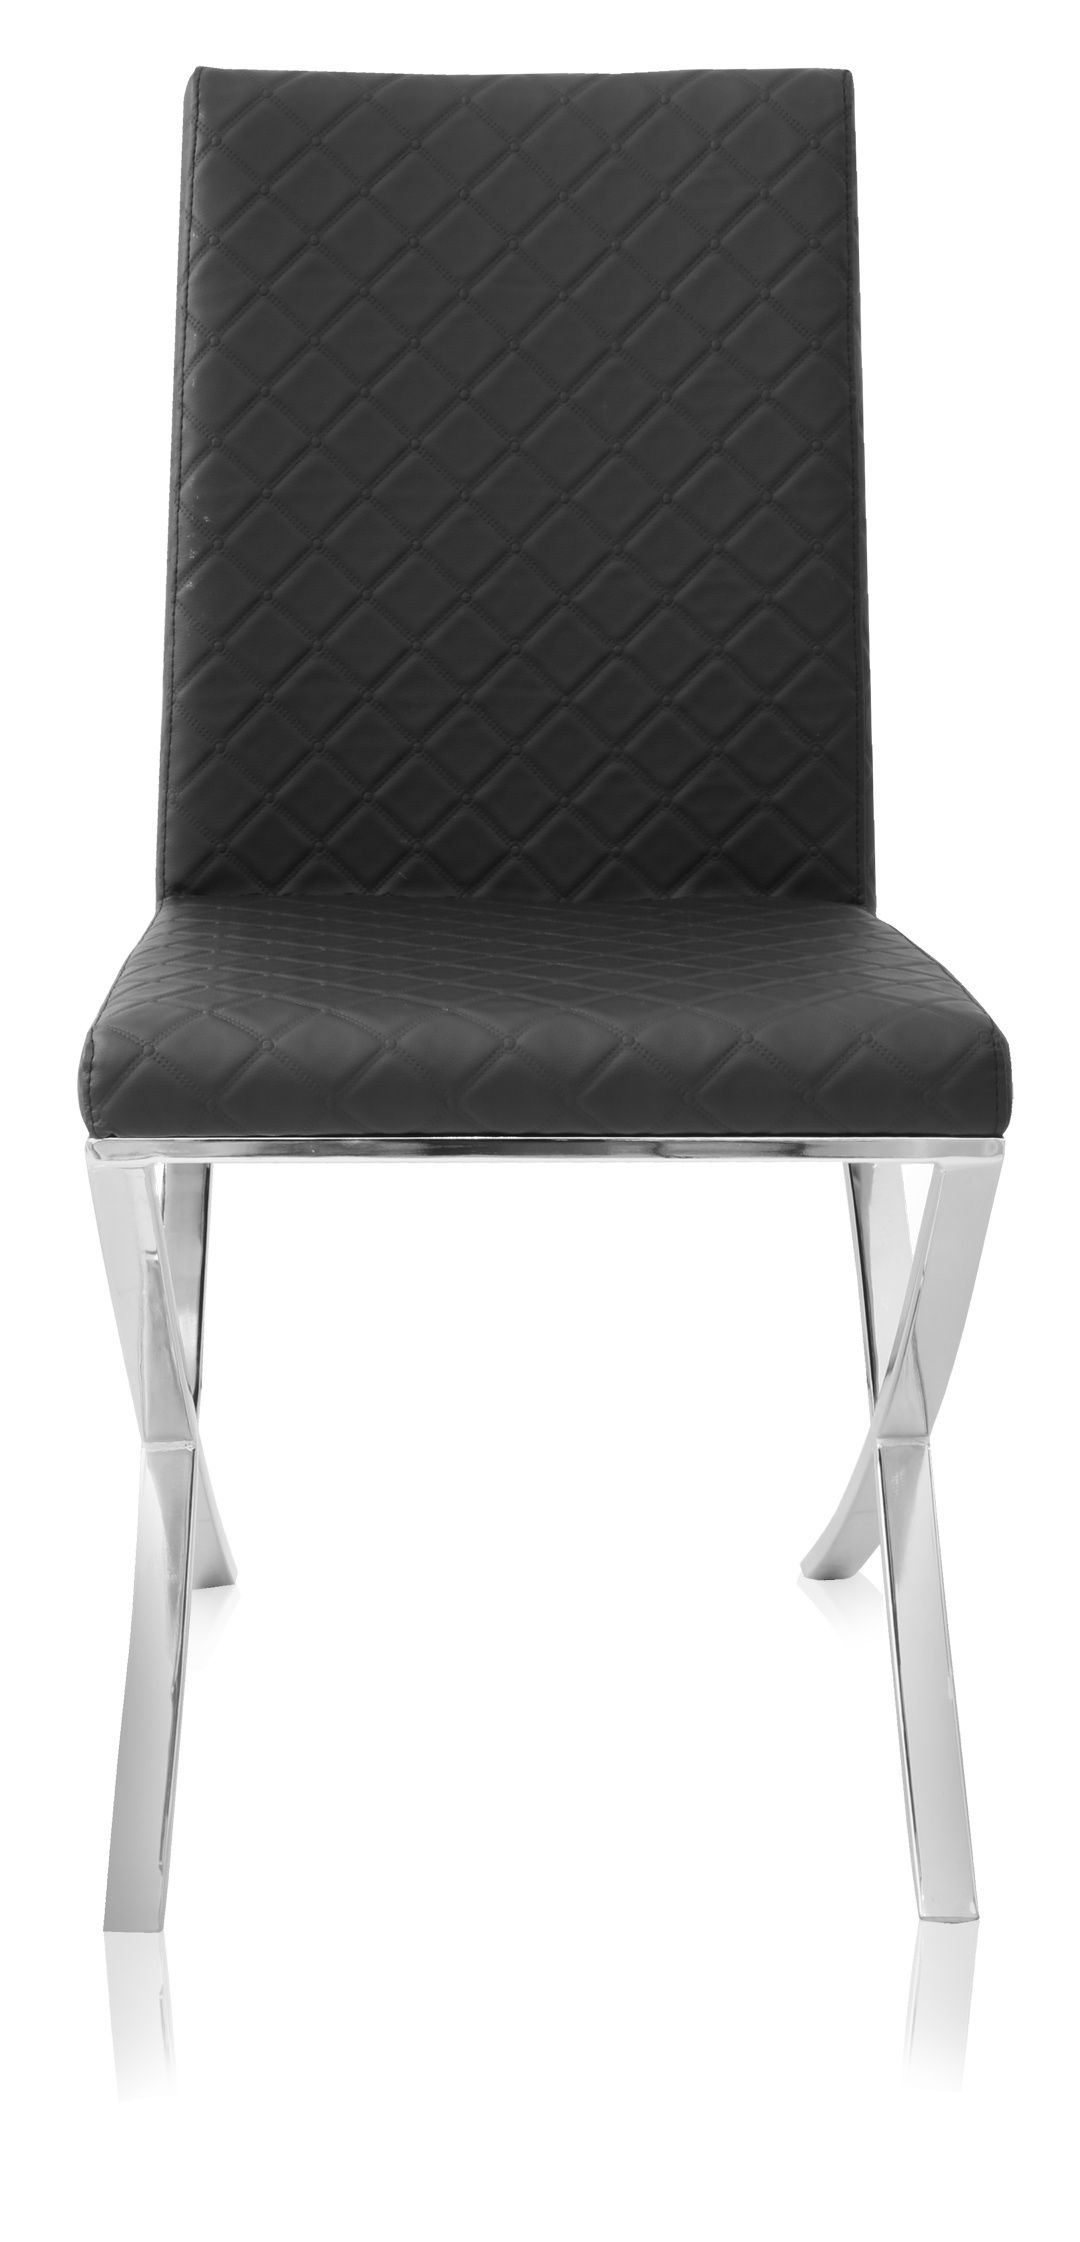 Black Quilted Celeste Modern Dining Chair Black Side Chairs